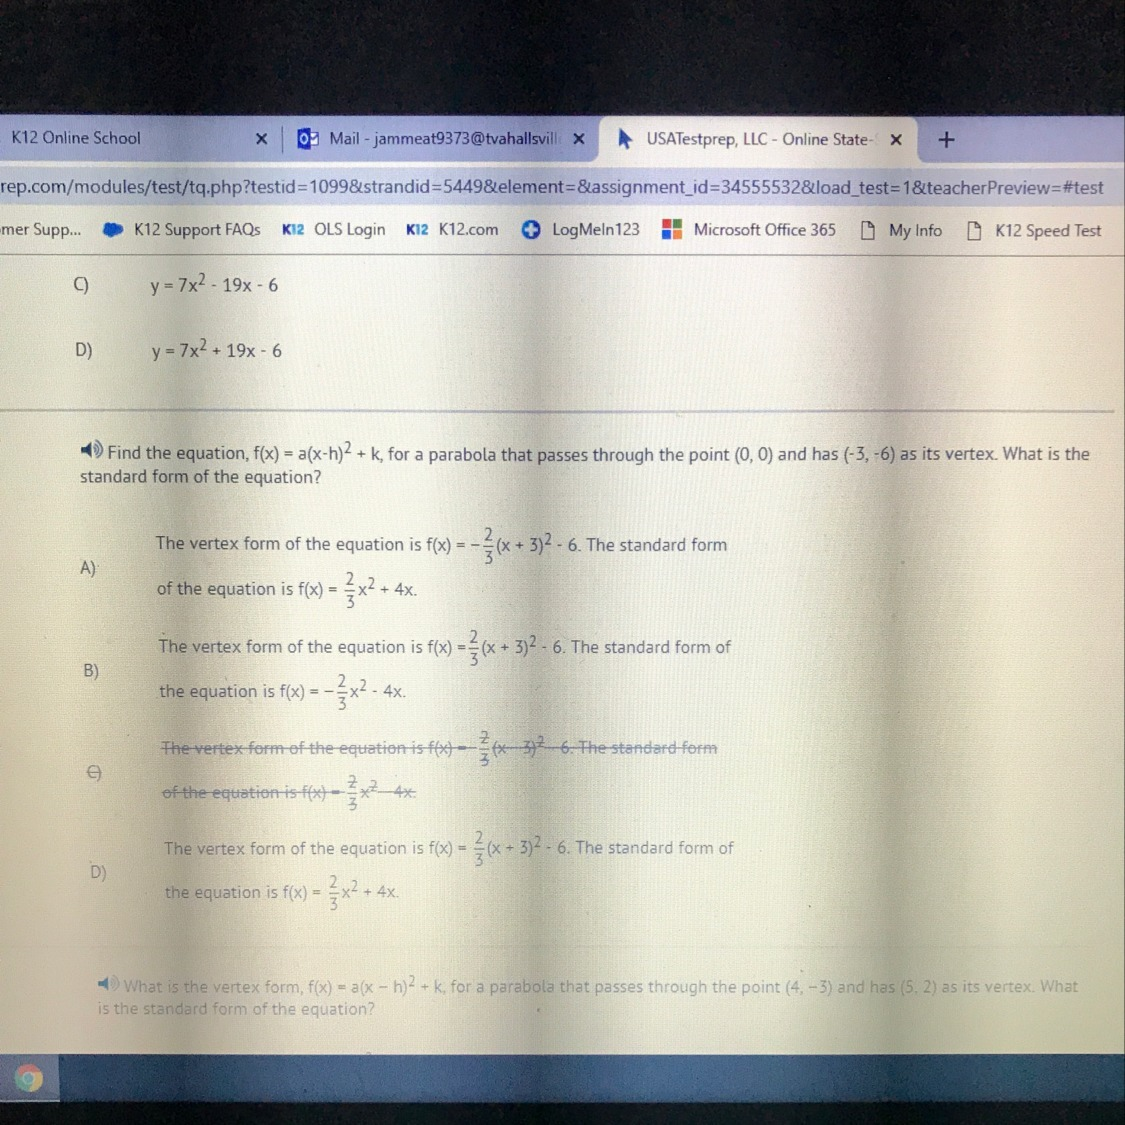 Need help please this question is very confusing i would love some